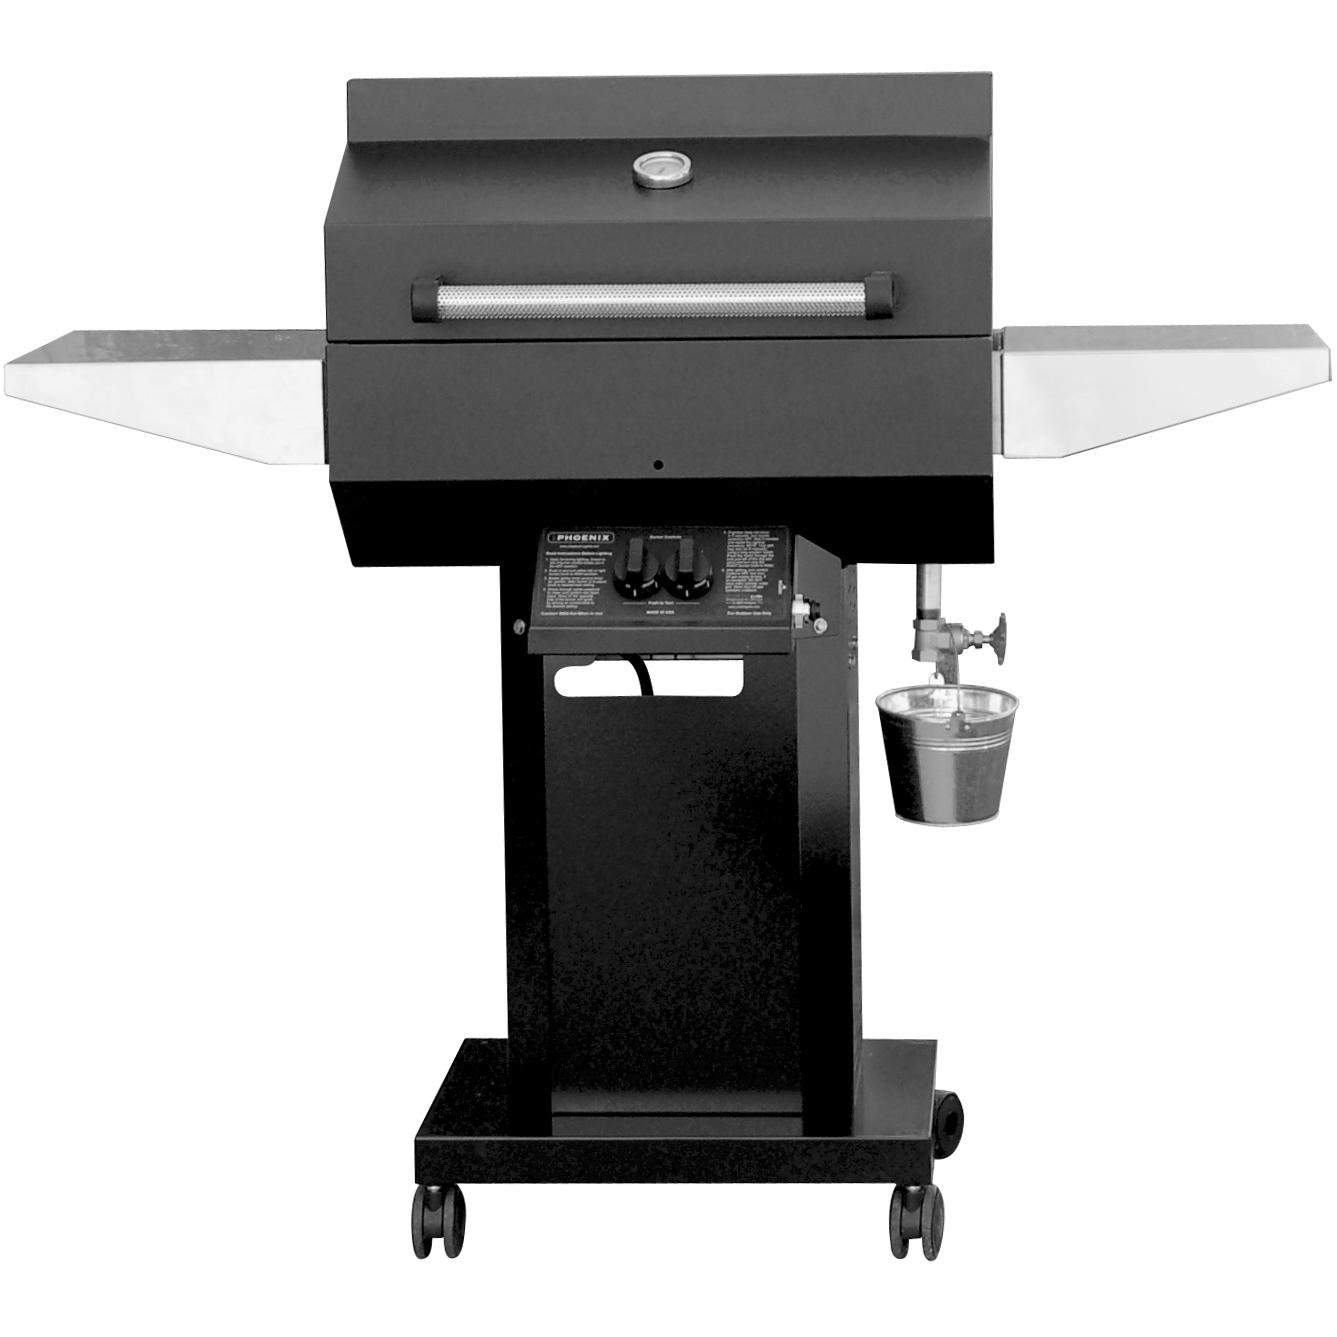 deals phoenix grill pfmg black propane gas grill head on black pedestal cart sales here price. Black Bedroom Furniture Sets. Home Design Ideas